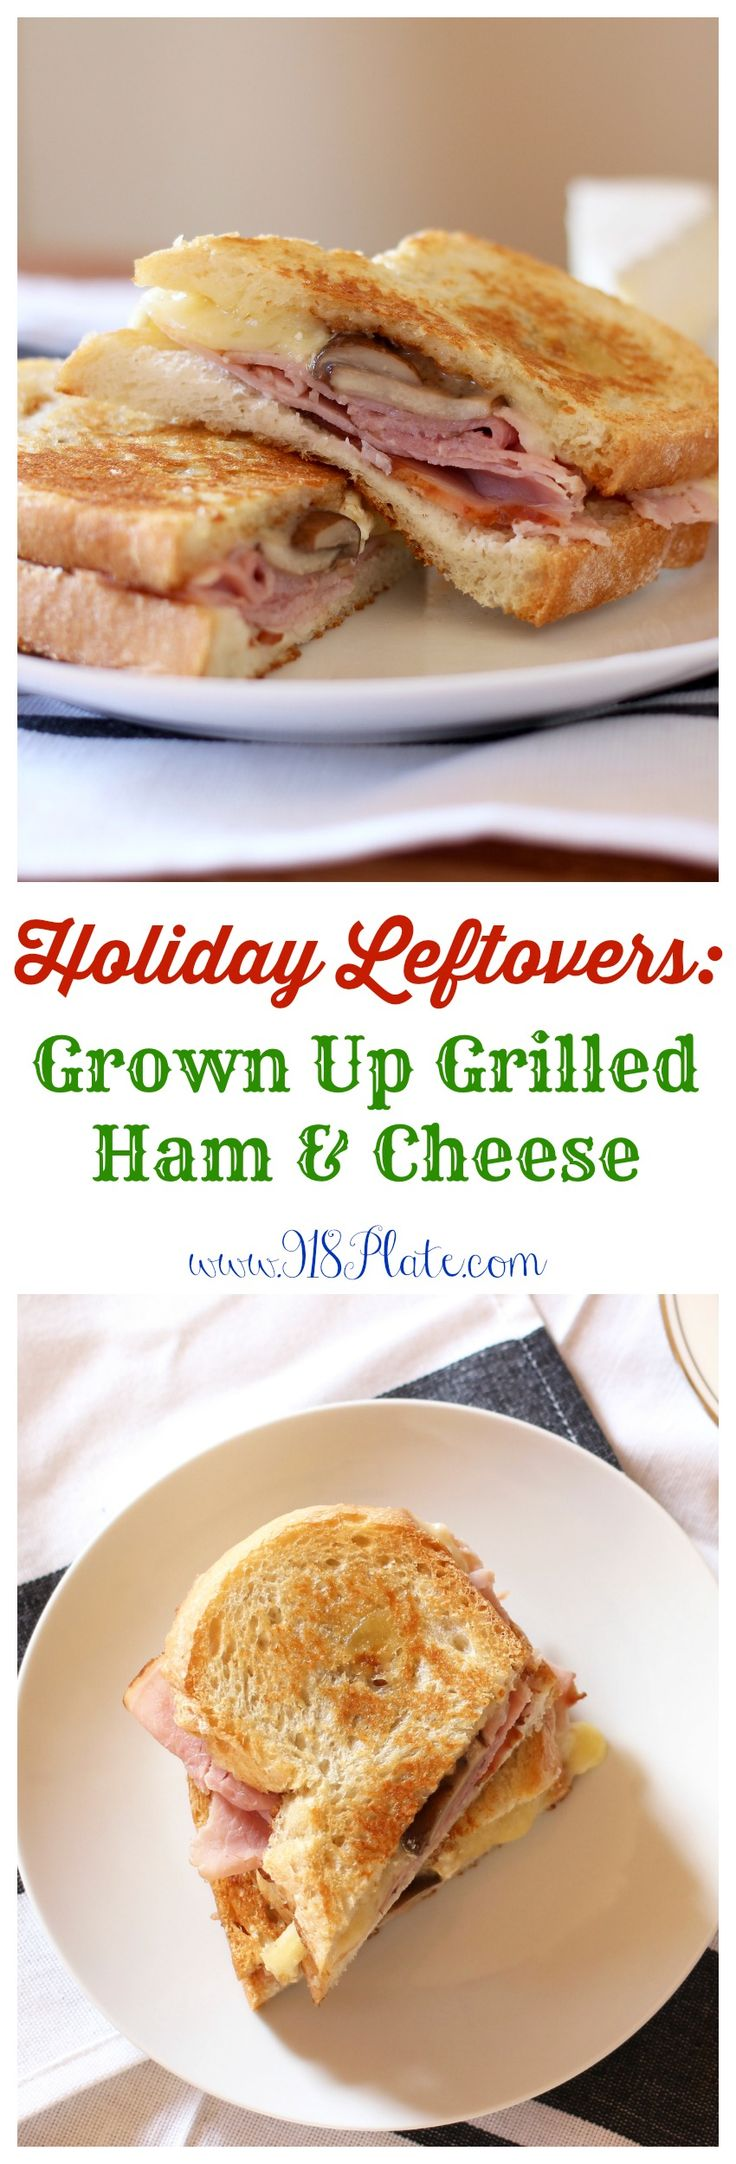 This sandwich is like a grown-up grilled ham & cheese sandwich, and a ...